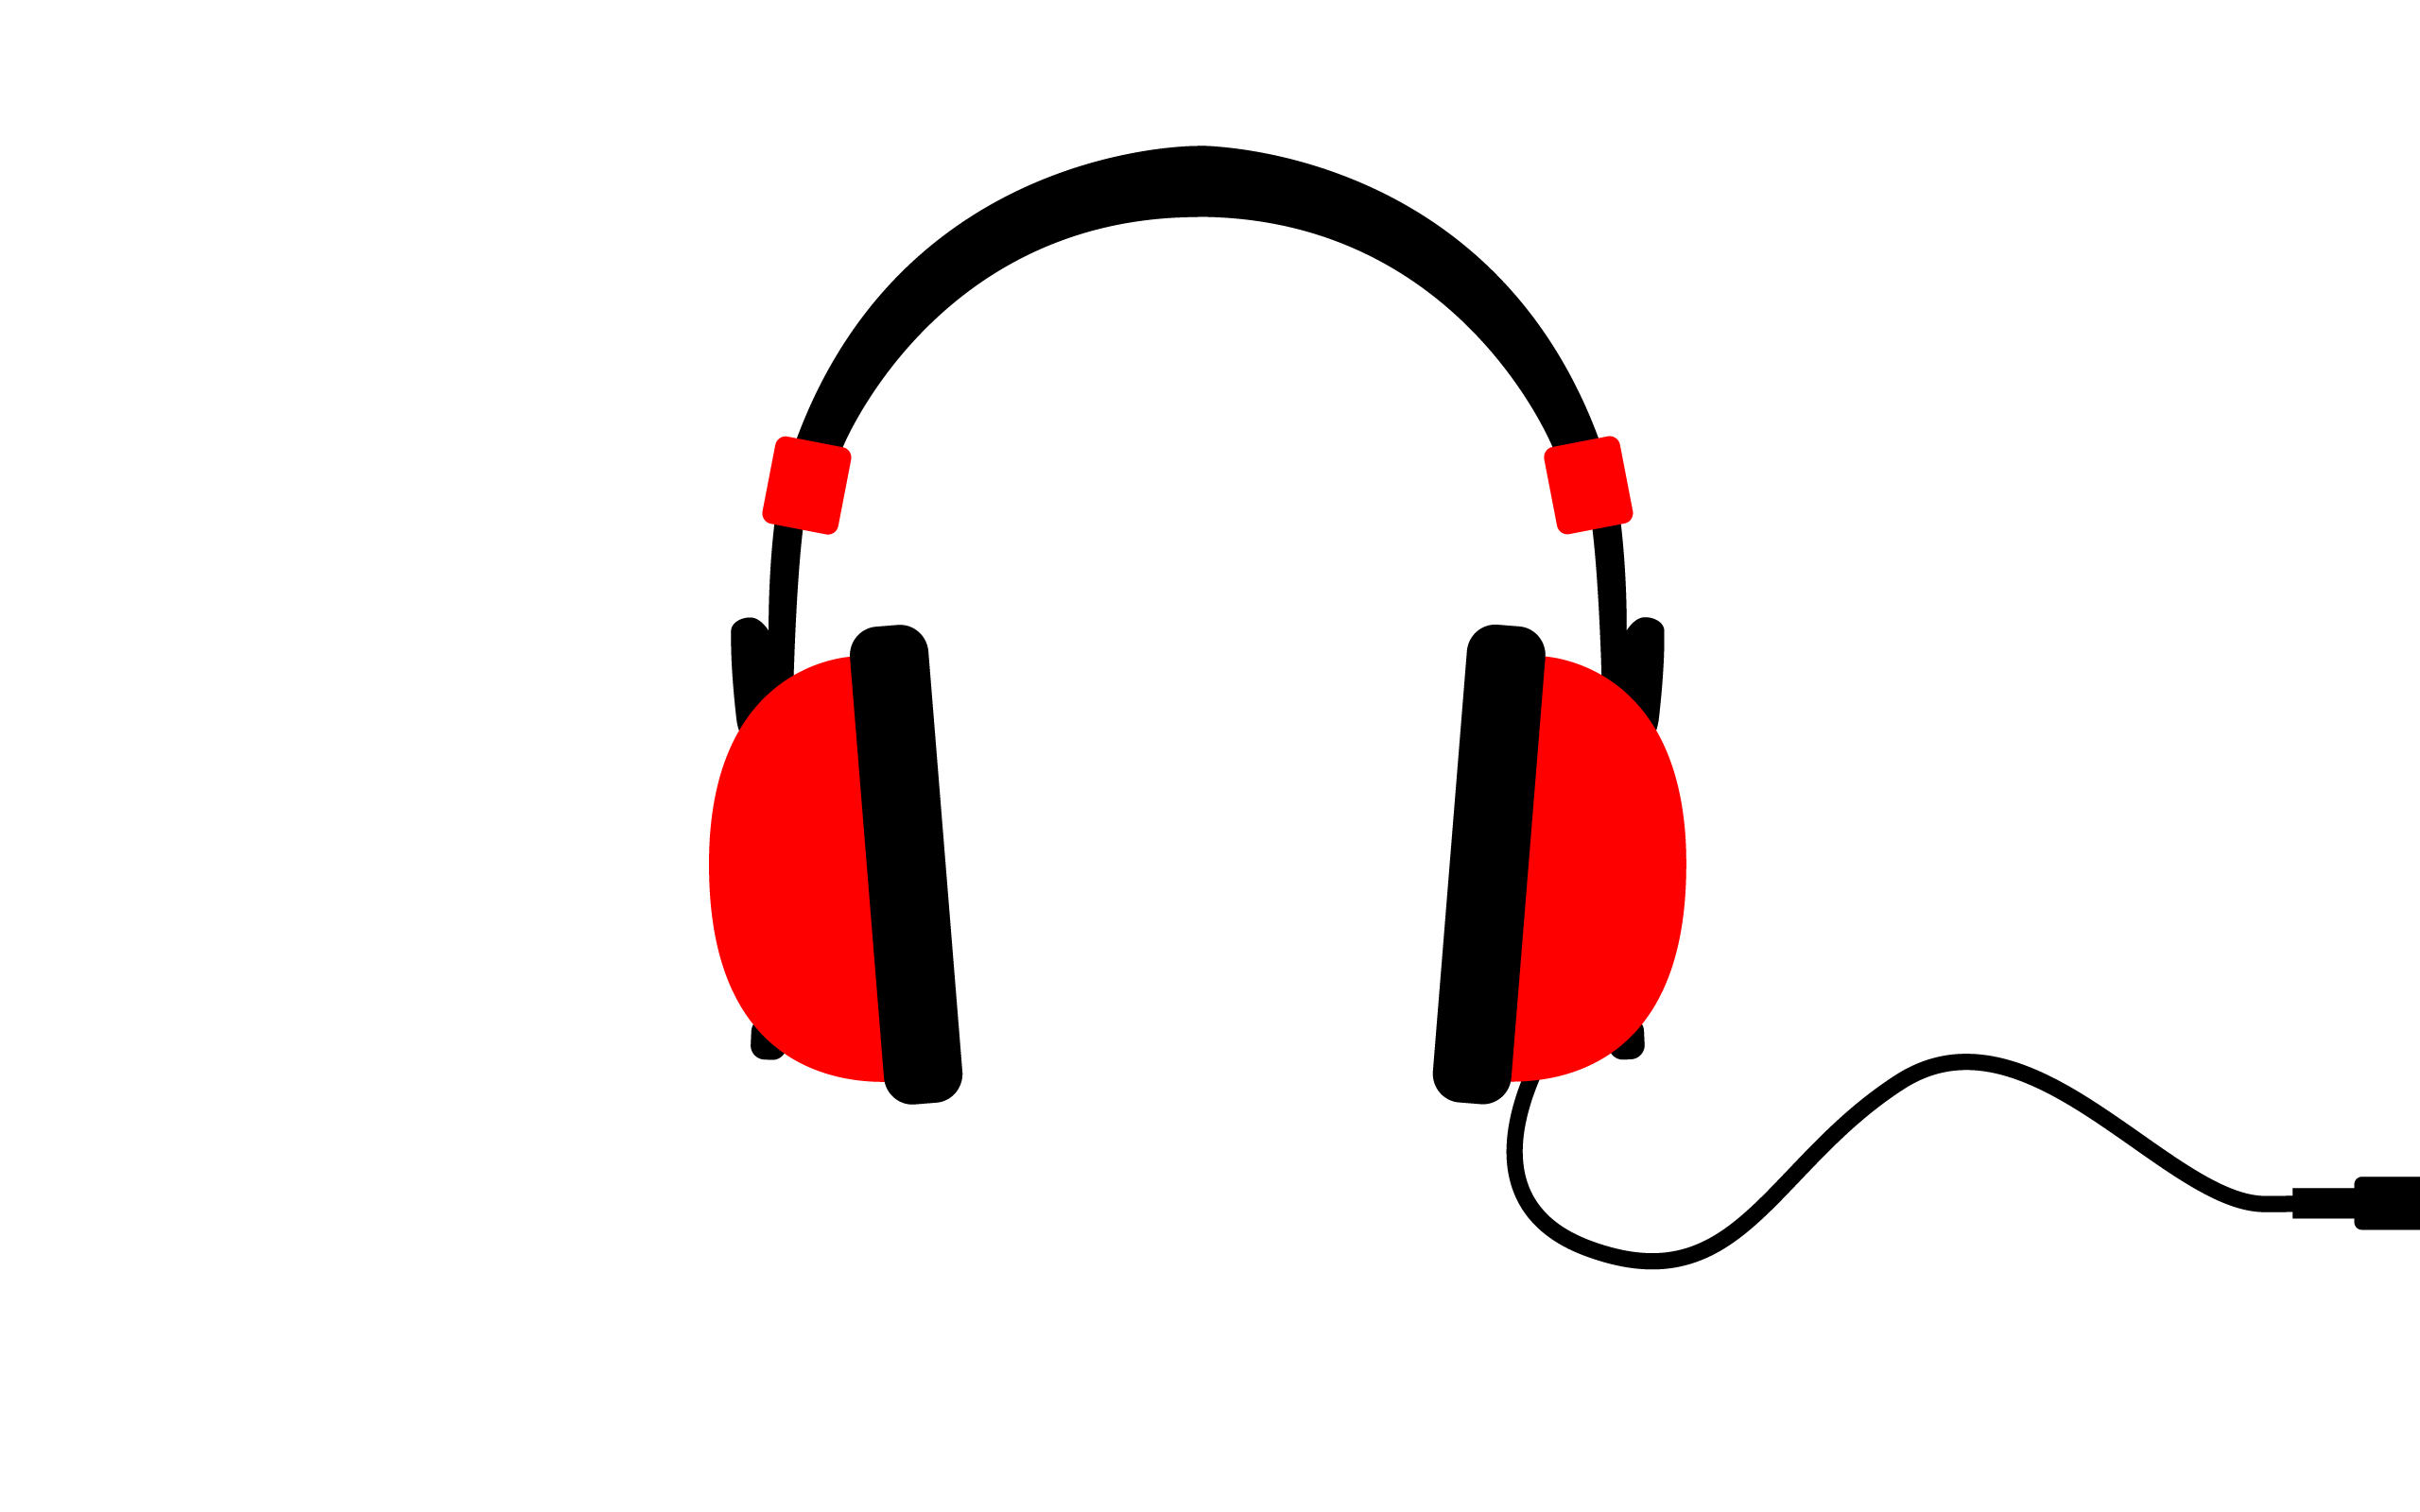 Red beats clipart.